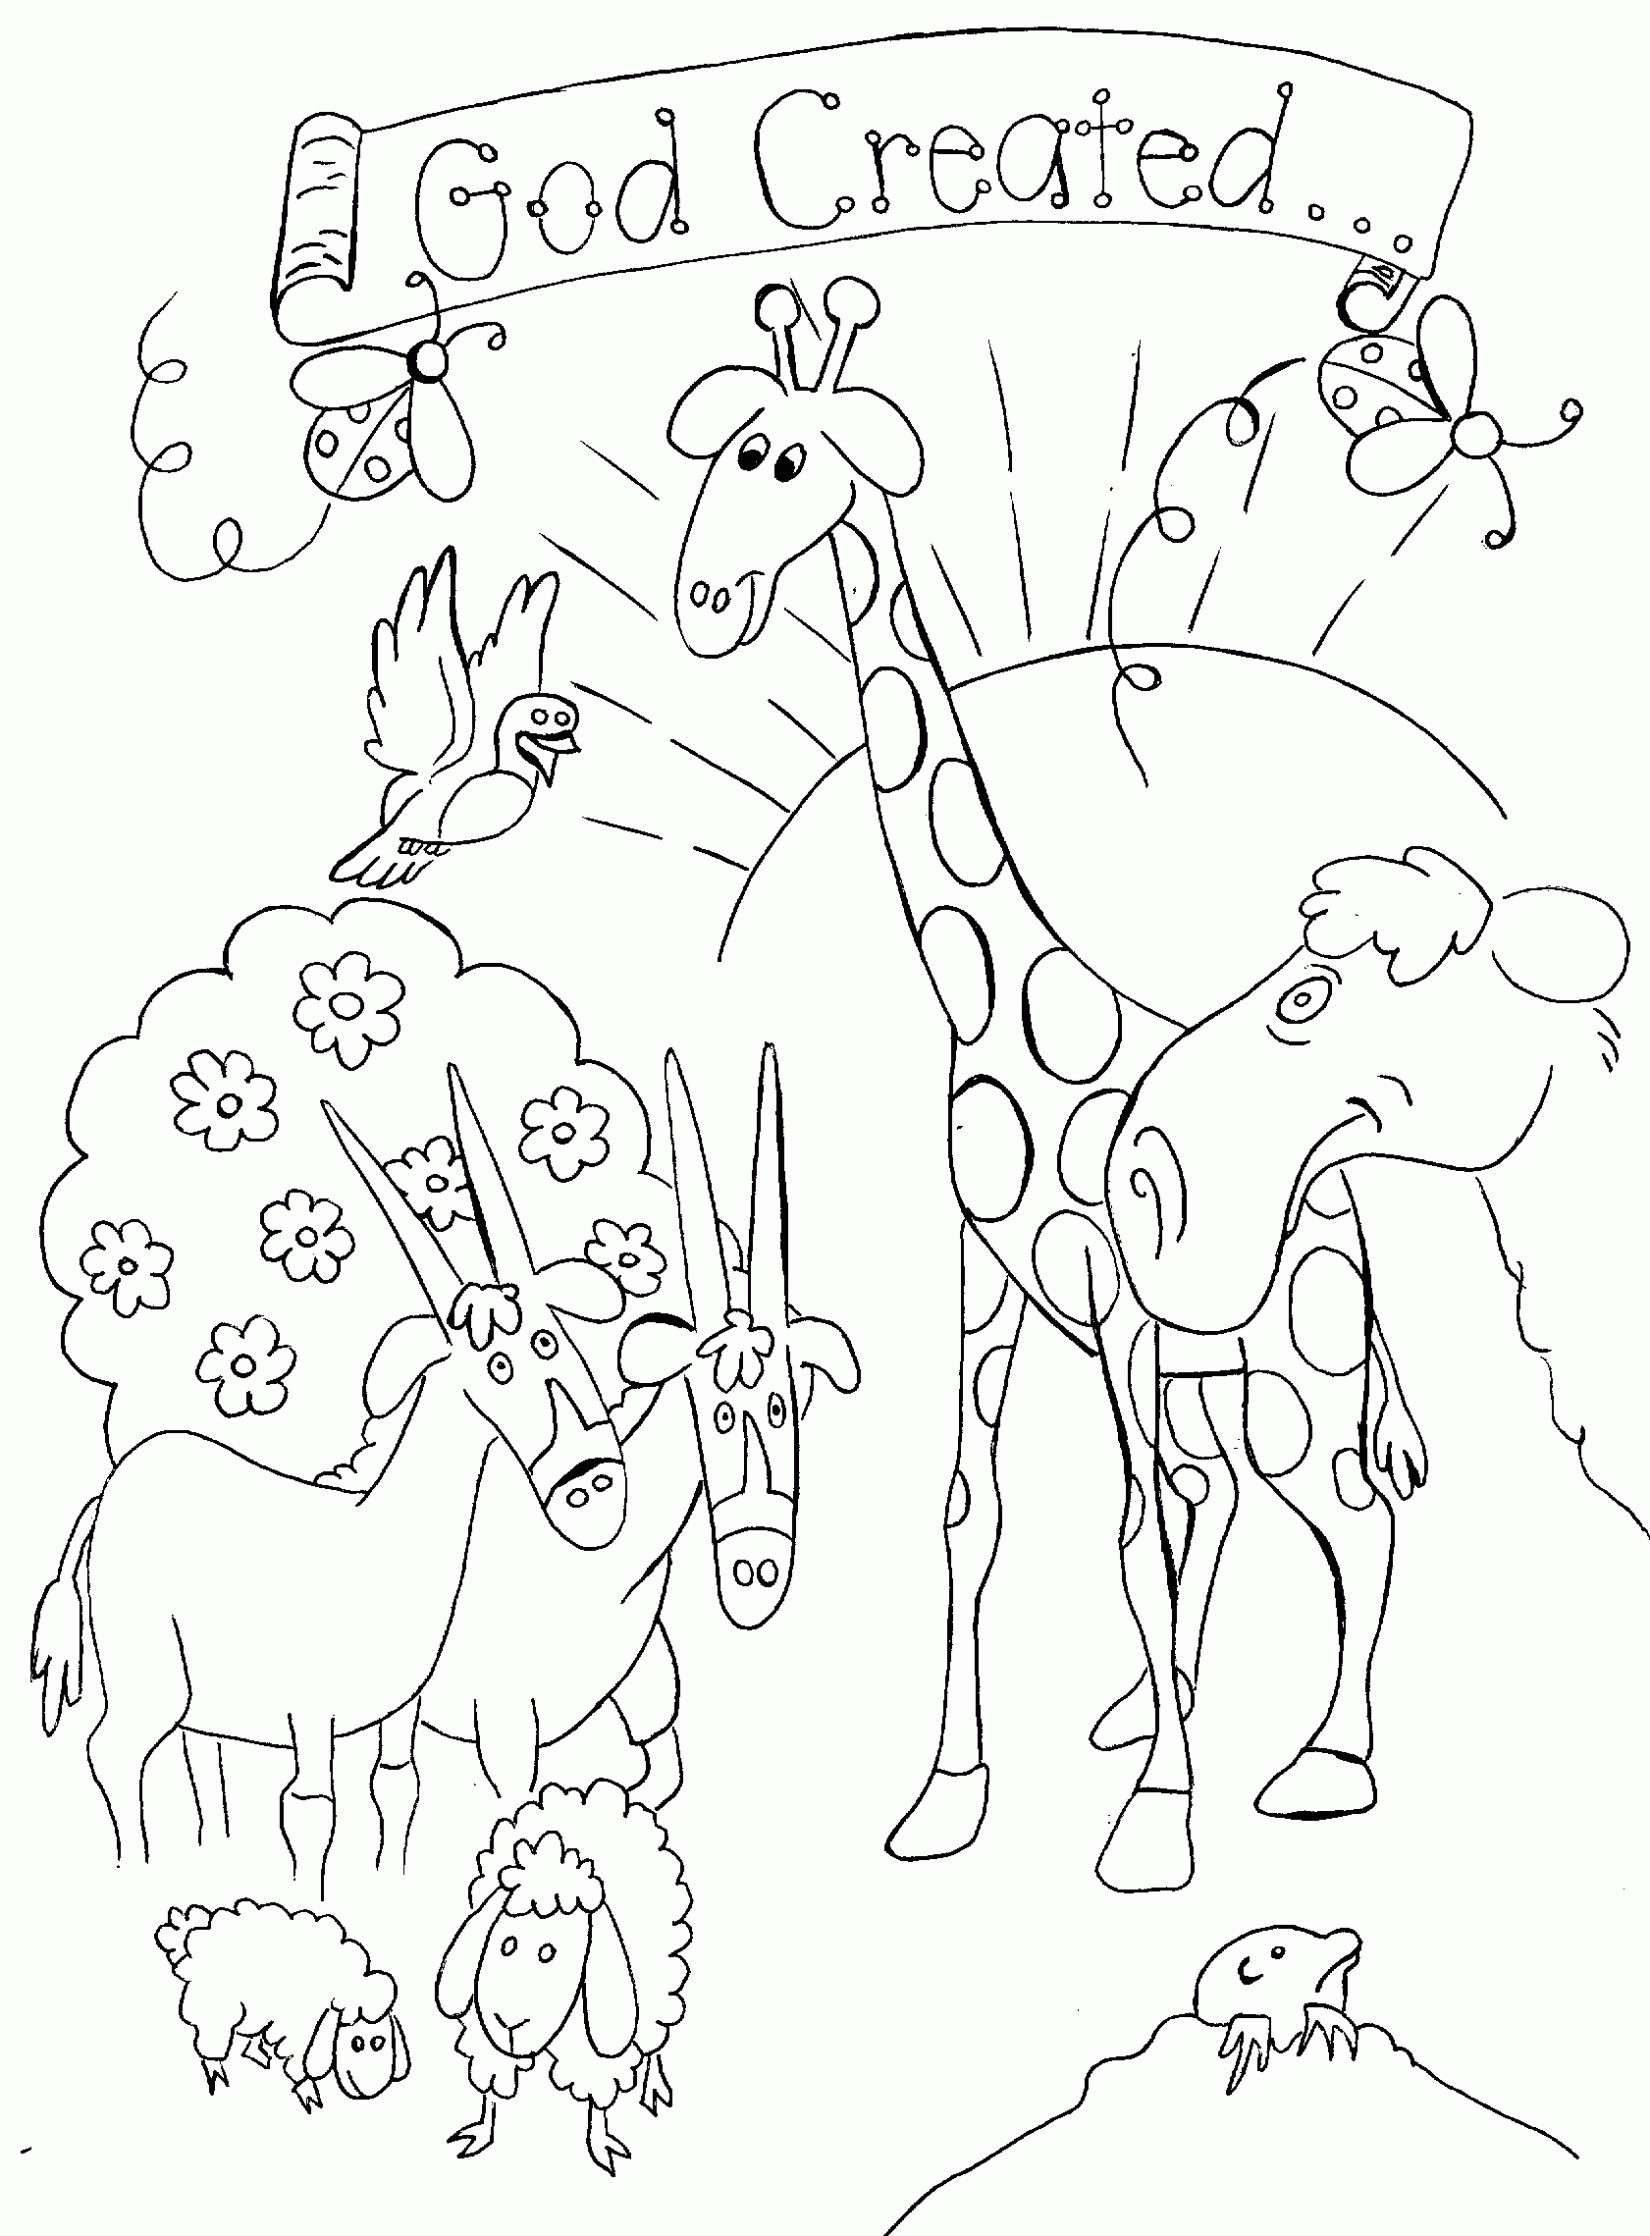 bible story coloring pages preschoolers Collection-Bible Story Coloring Pages for Preschoolers Bible Coloring Pages Kids Valid Christian Coloring Sheets Best Bible 18-b